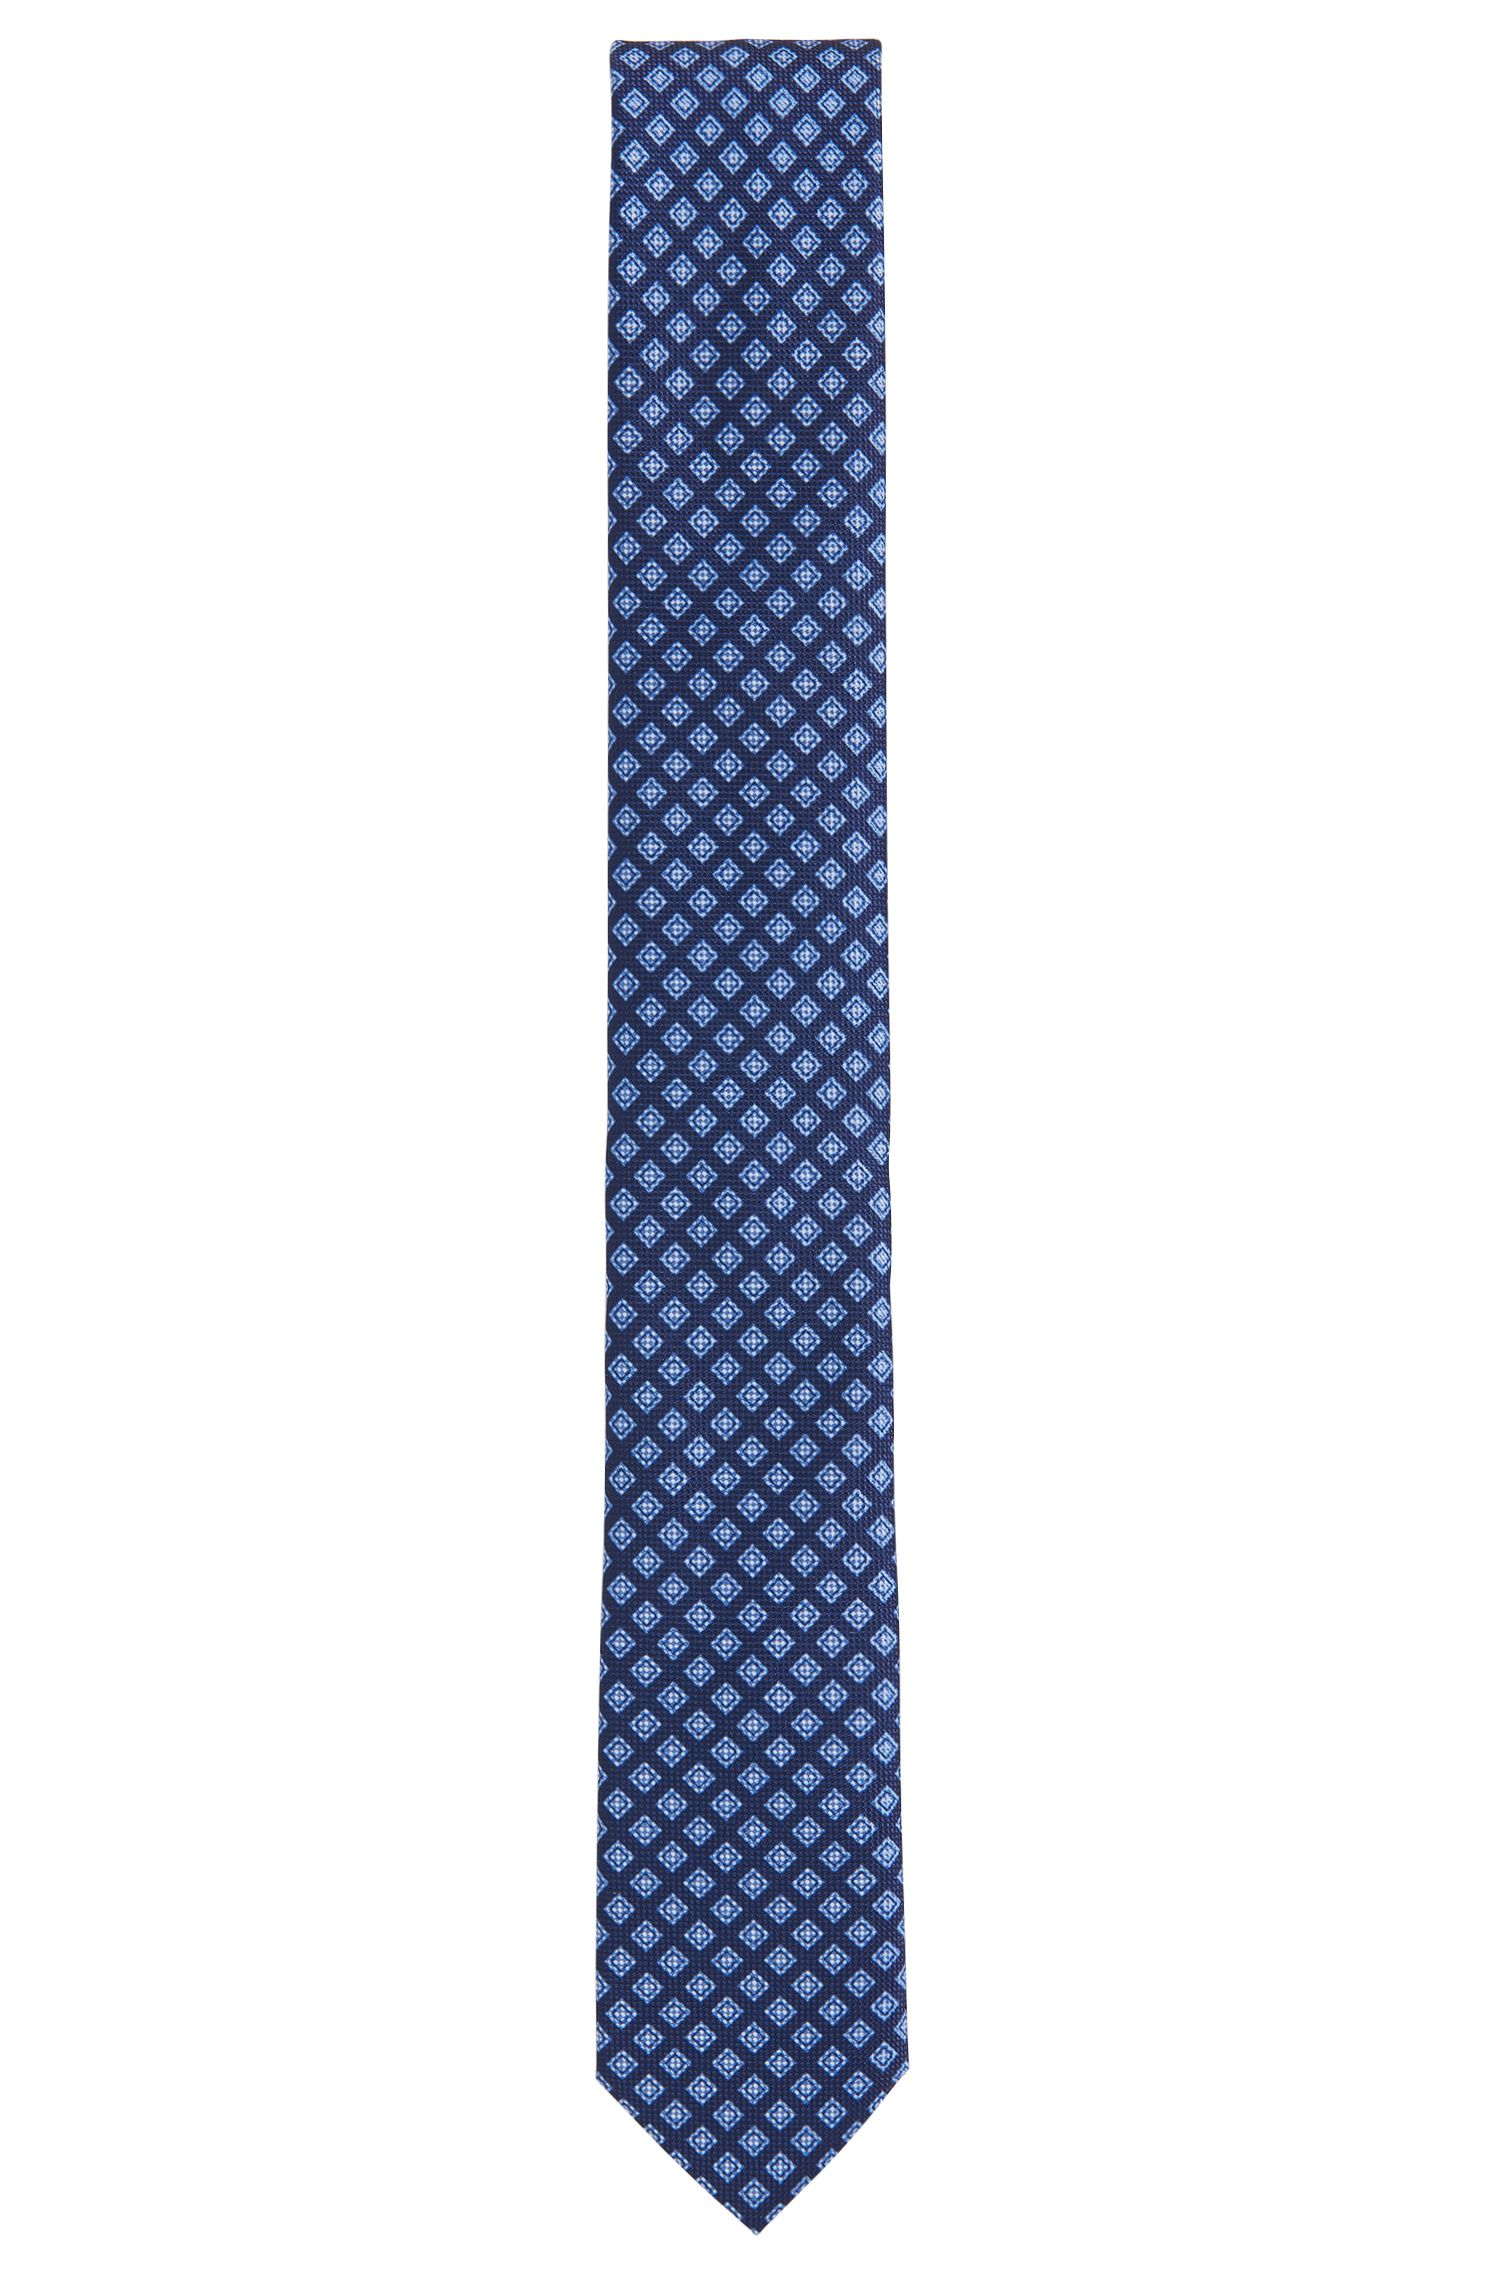 Patterned Italian Silk Tie, Slim | Tie 6 cm